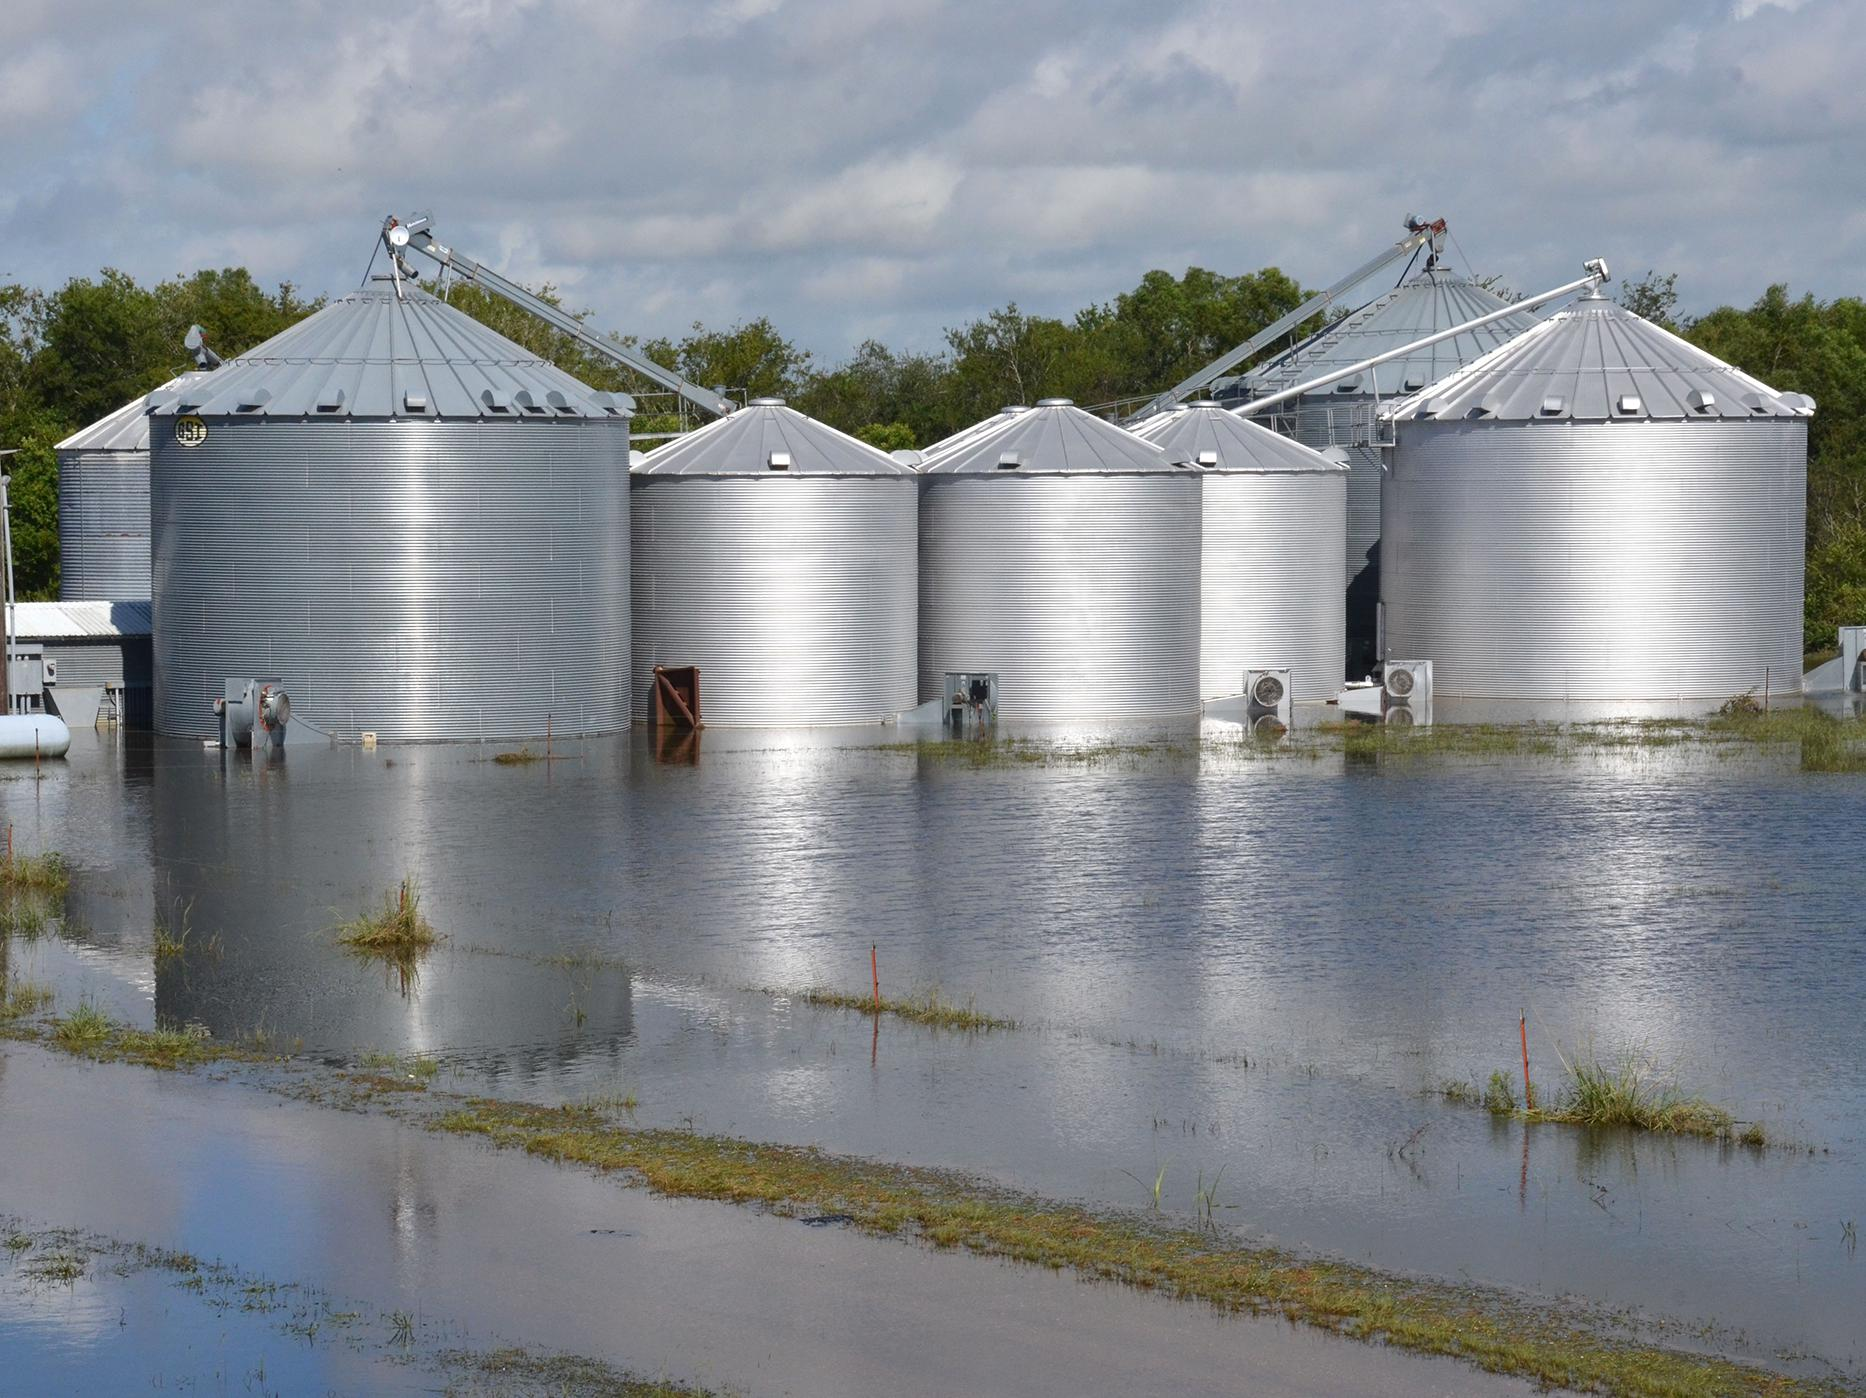 Flooded grain bins in Crowley, Louisiana, are among the many problems Louisiana producers are facing after historic flooding caused more than $100 million in damage to the state's agriculture. Mississippi State University Extension Service personnel have worked with state hay growers to send forage to producers in Louisiana affected by flooding earlier this month. (Photo by Louisiana State University AgCenter Communications/Bruce Schultz)